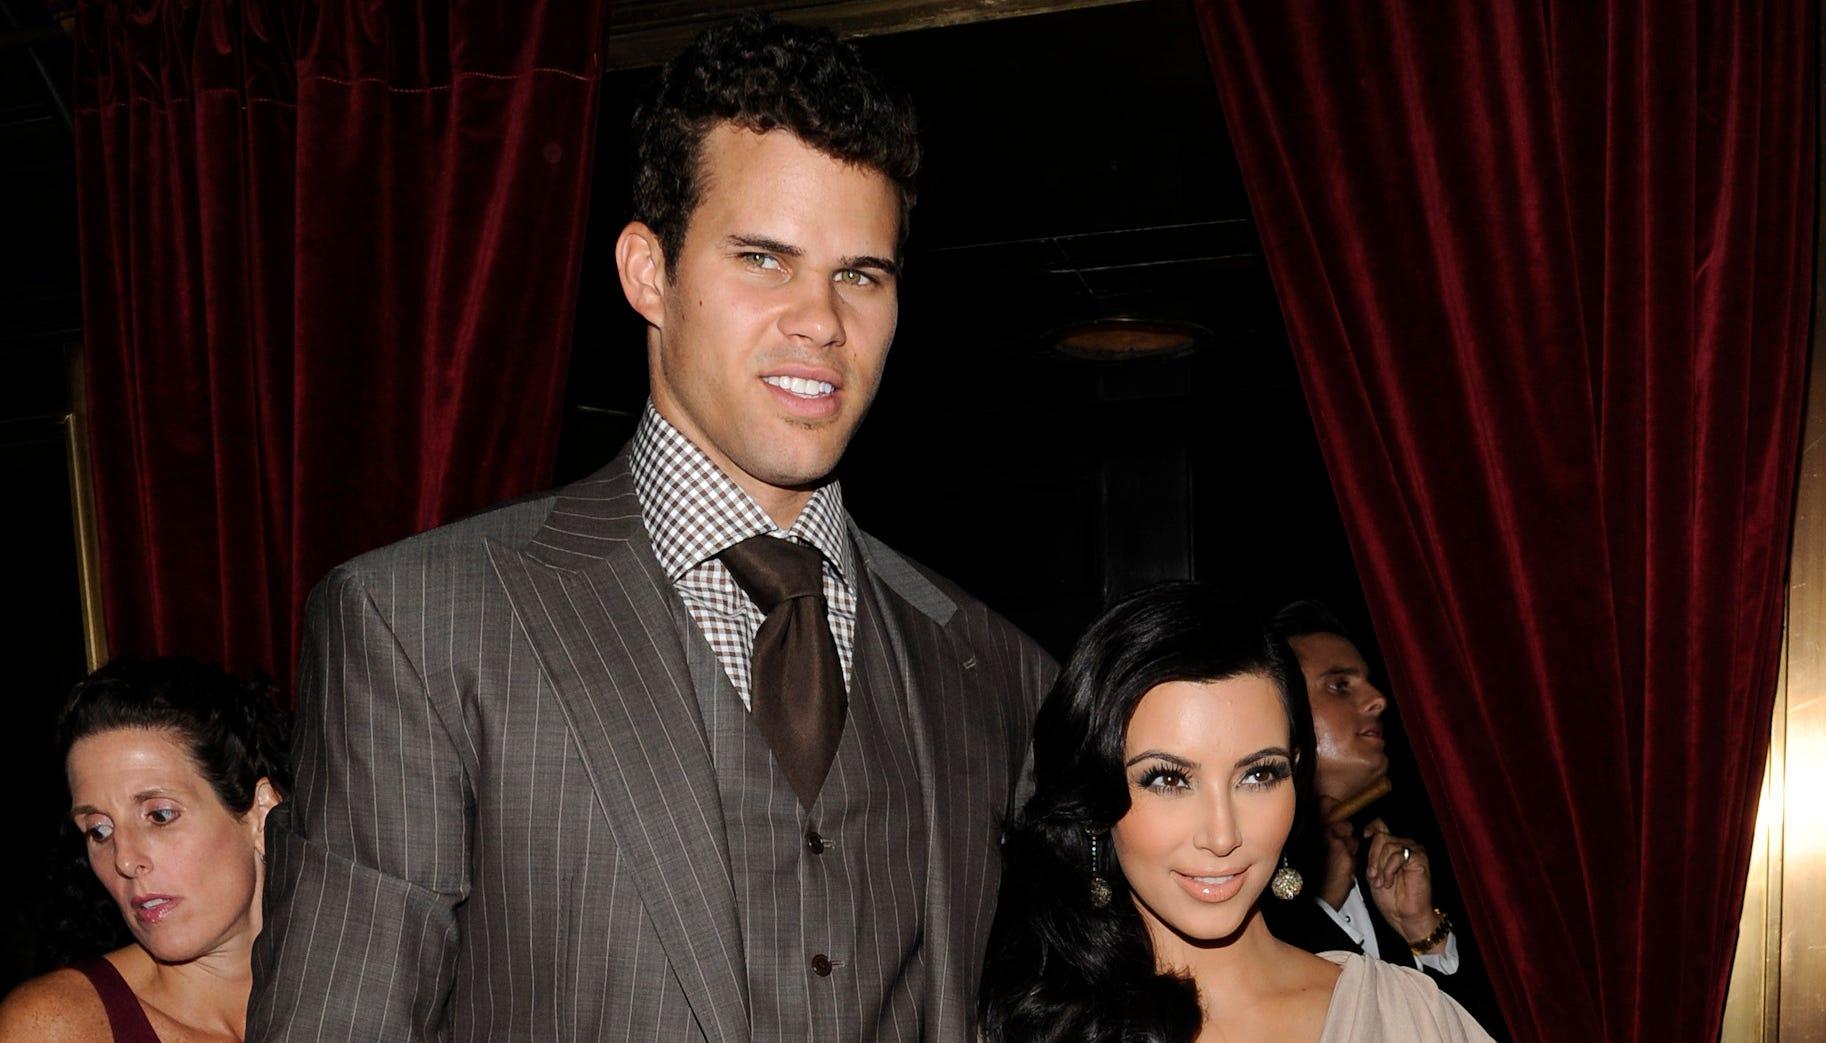 Kris Humphries On Marriage Brutal Divorce To Kim Kardashian Go on to discover millions of awesome videos and pictures in thousands of other. kris humphries on marriage brutal